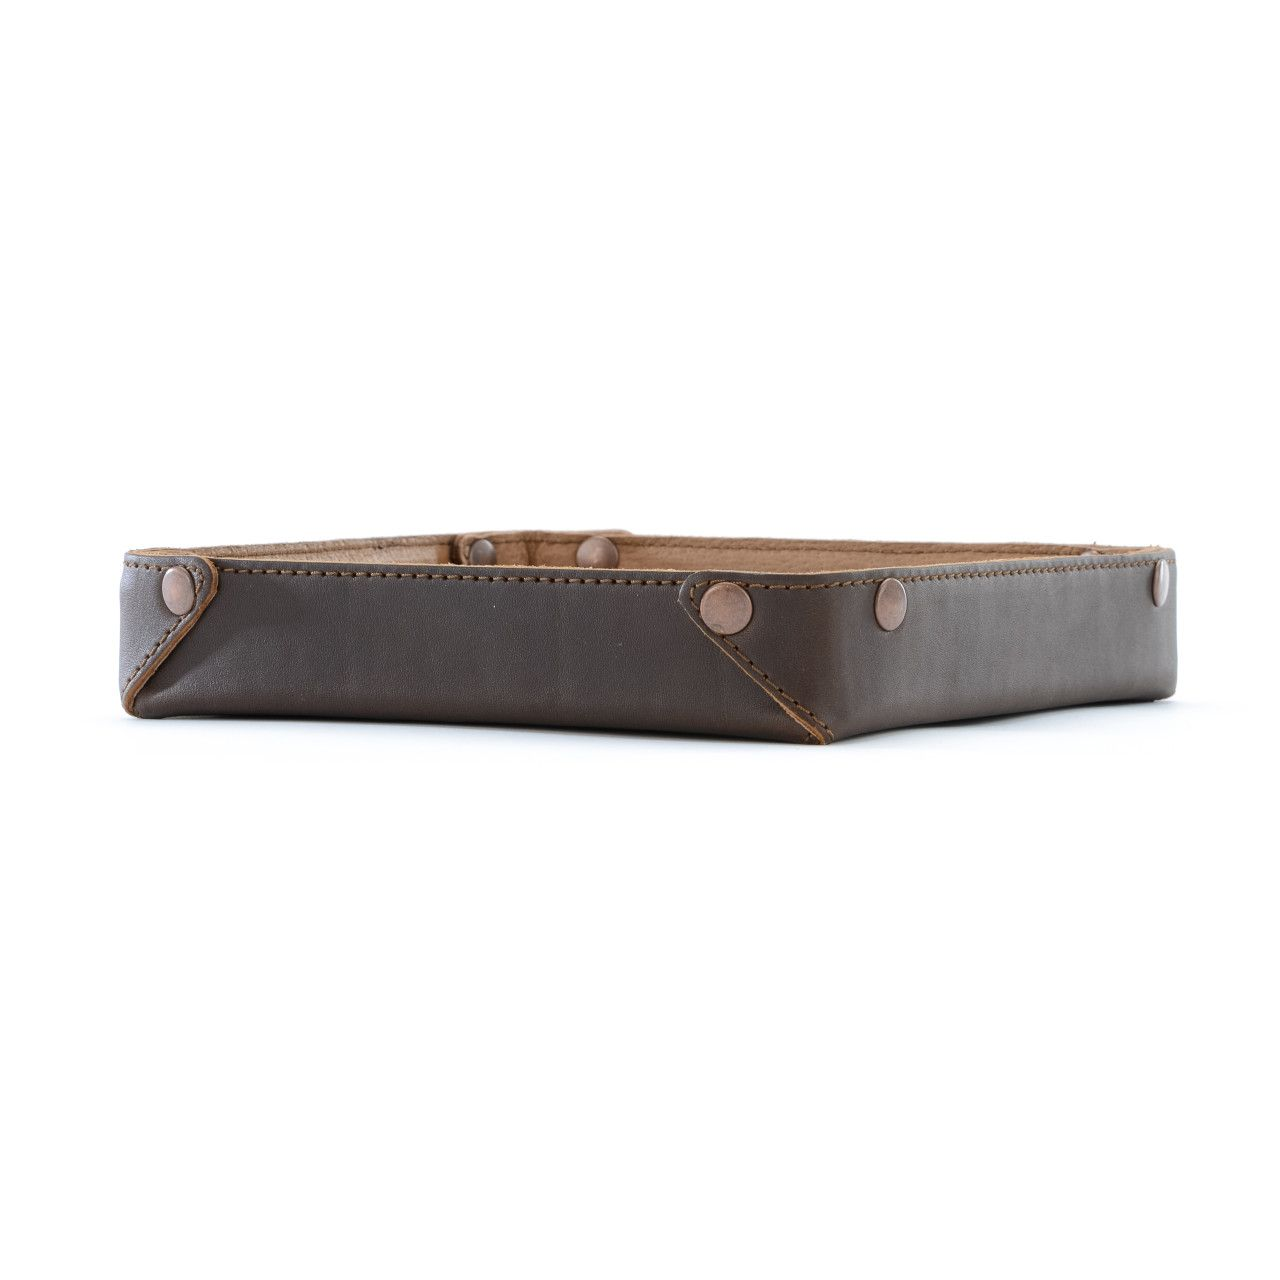 leather valet tray in dark coffee brown leather